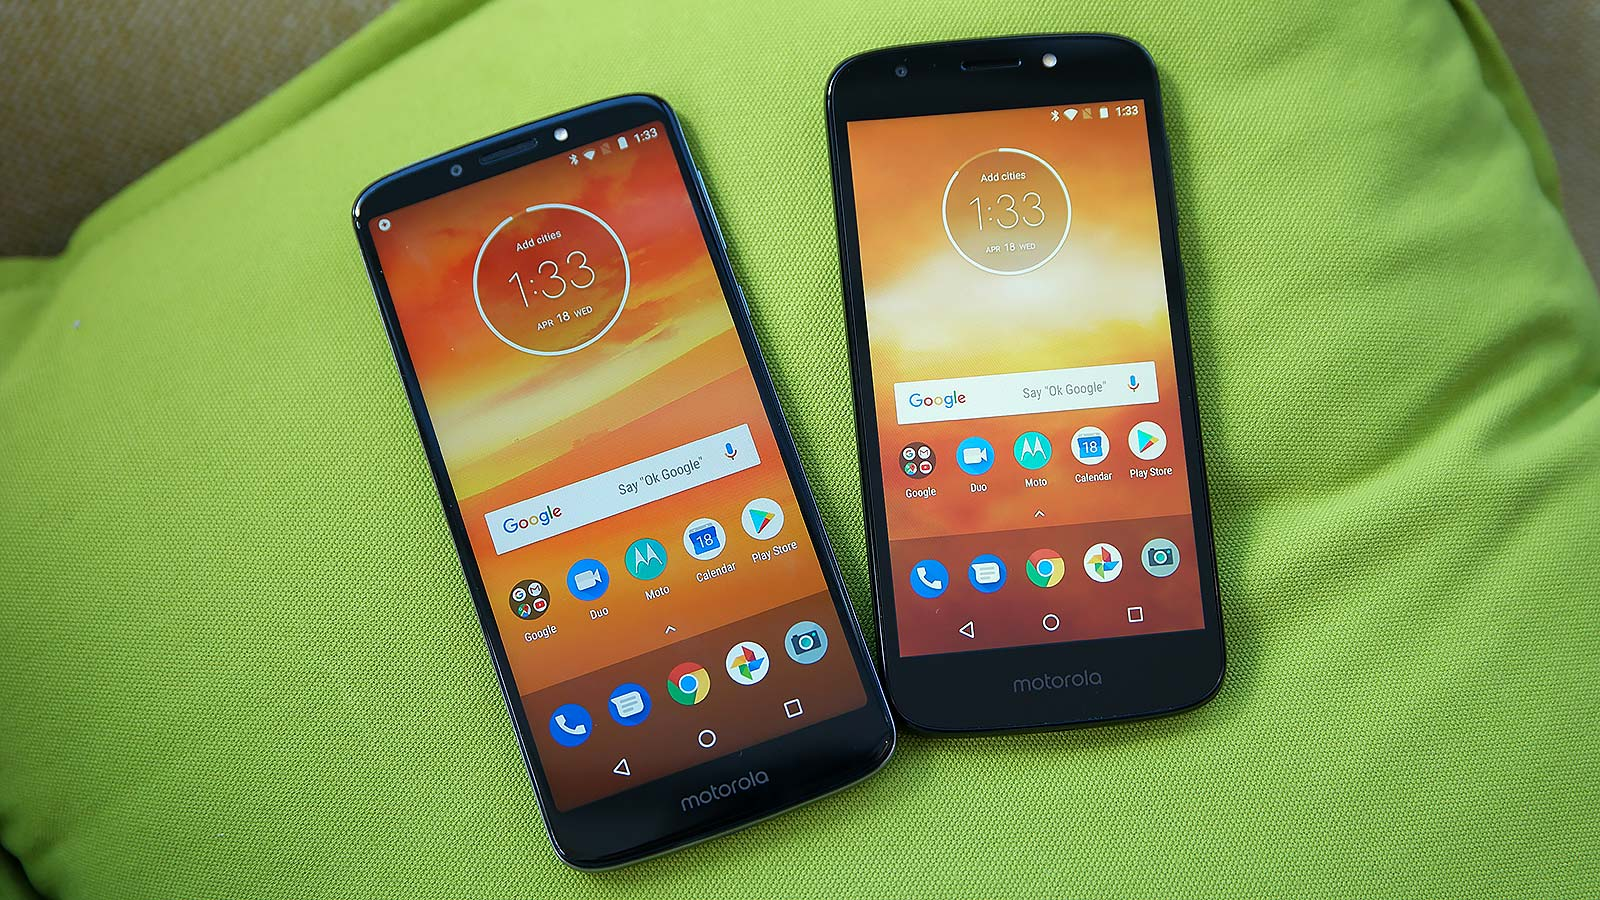 For phones that should cost around $150 (or maybe even less), the E5 Plus (left) and E5 Play don't look too shabby.